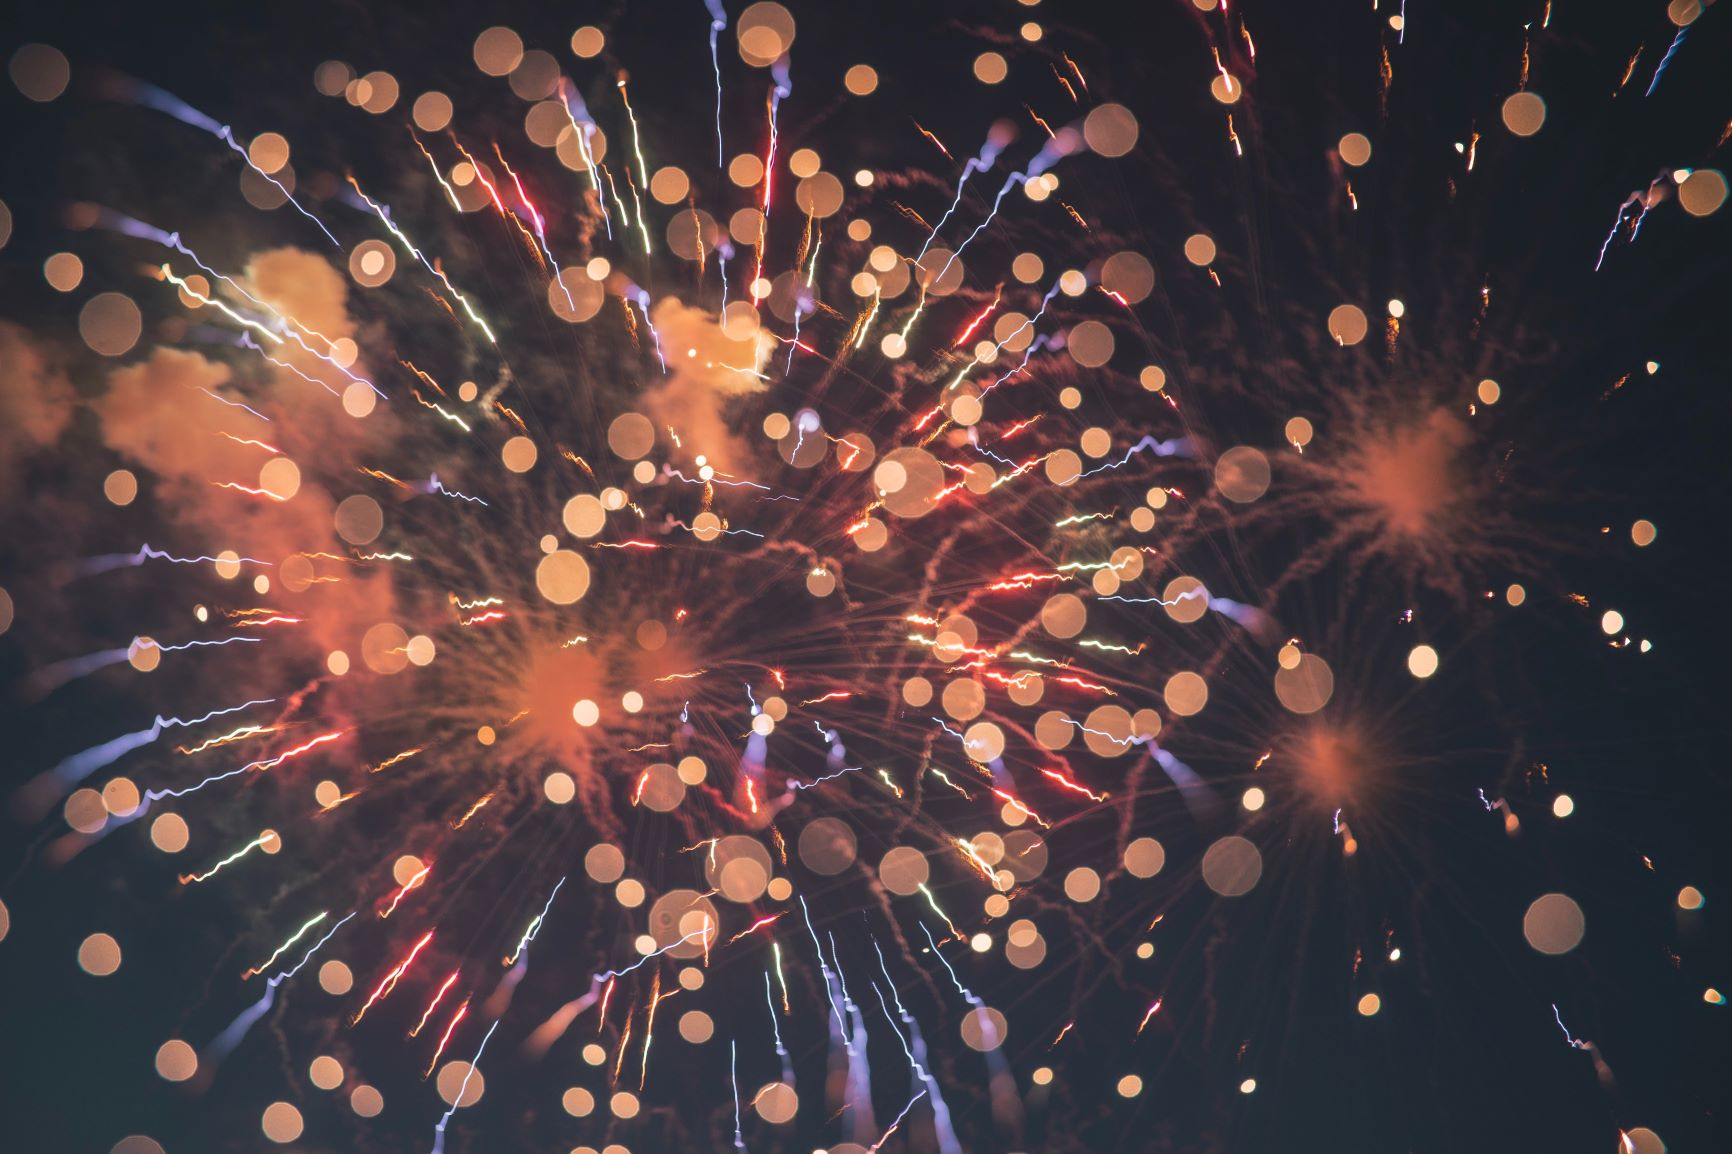 Close up view of a hand holding a sparkler.